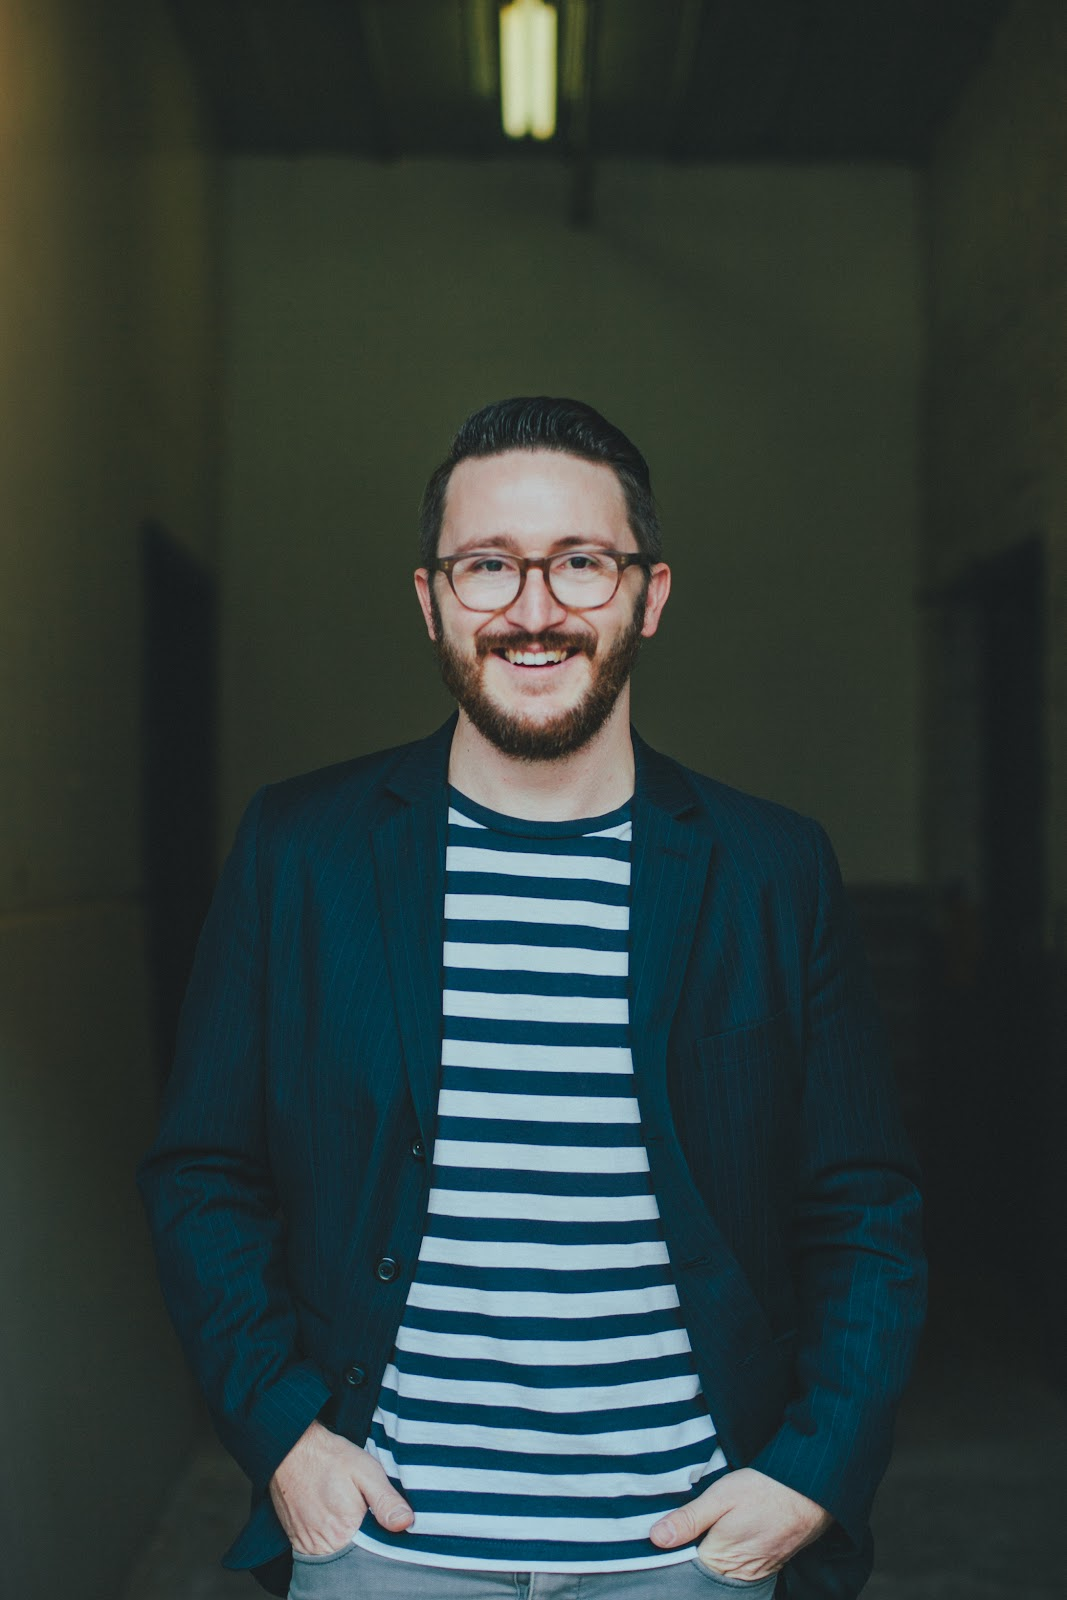 Jove Meyer of Jove Meyer Events NYC - How to plan more LGBTQ+ inclusive events and break down gender-centric traditions